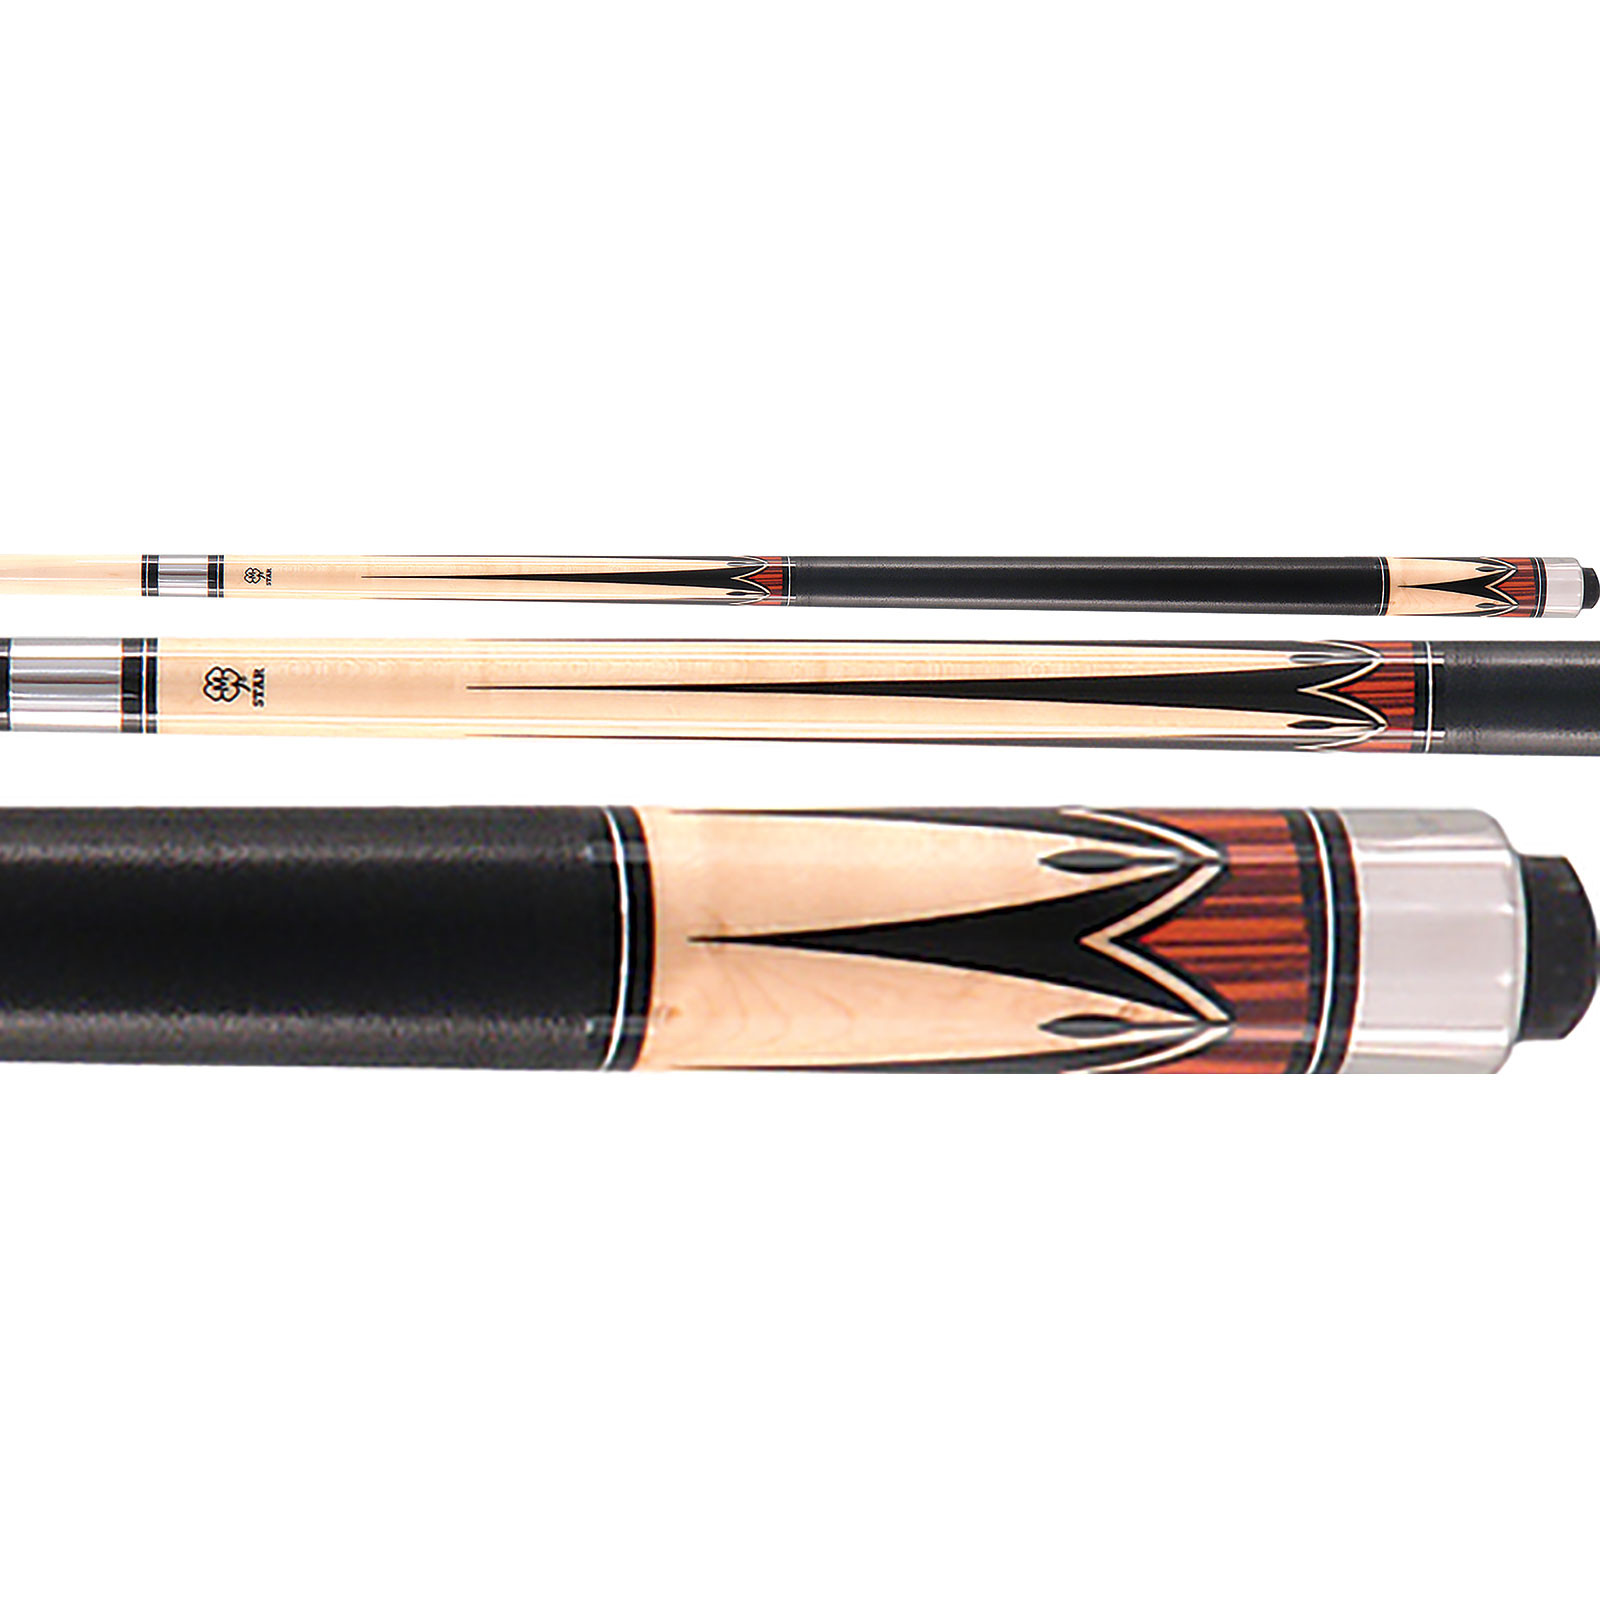 McDermott Star S9 Pool Cue - Brown/Tan